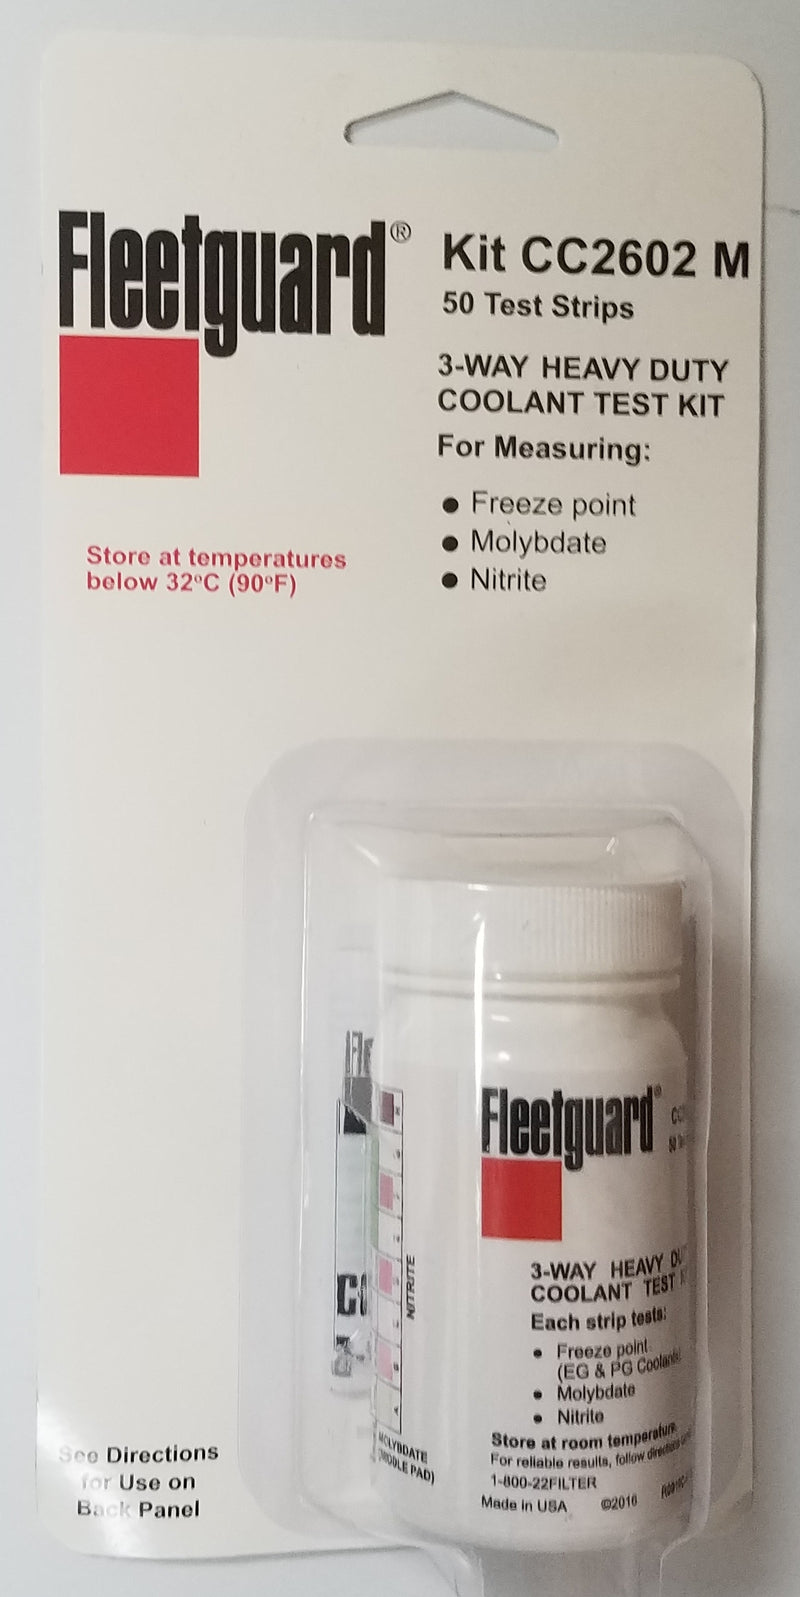 CC2602 Fleetguard Kit  (Replaced By CC2602-M) 50 Test Strips - crossfilters